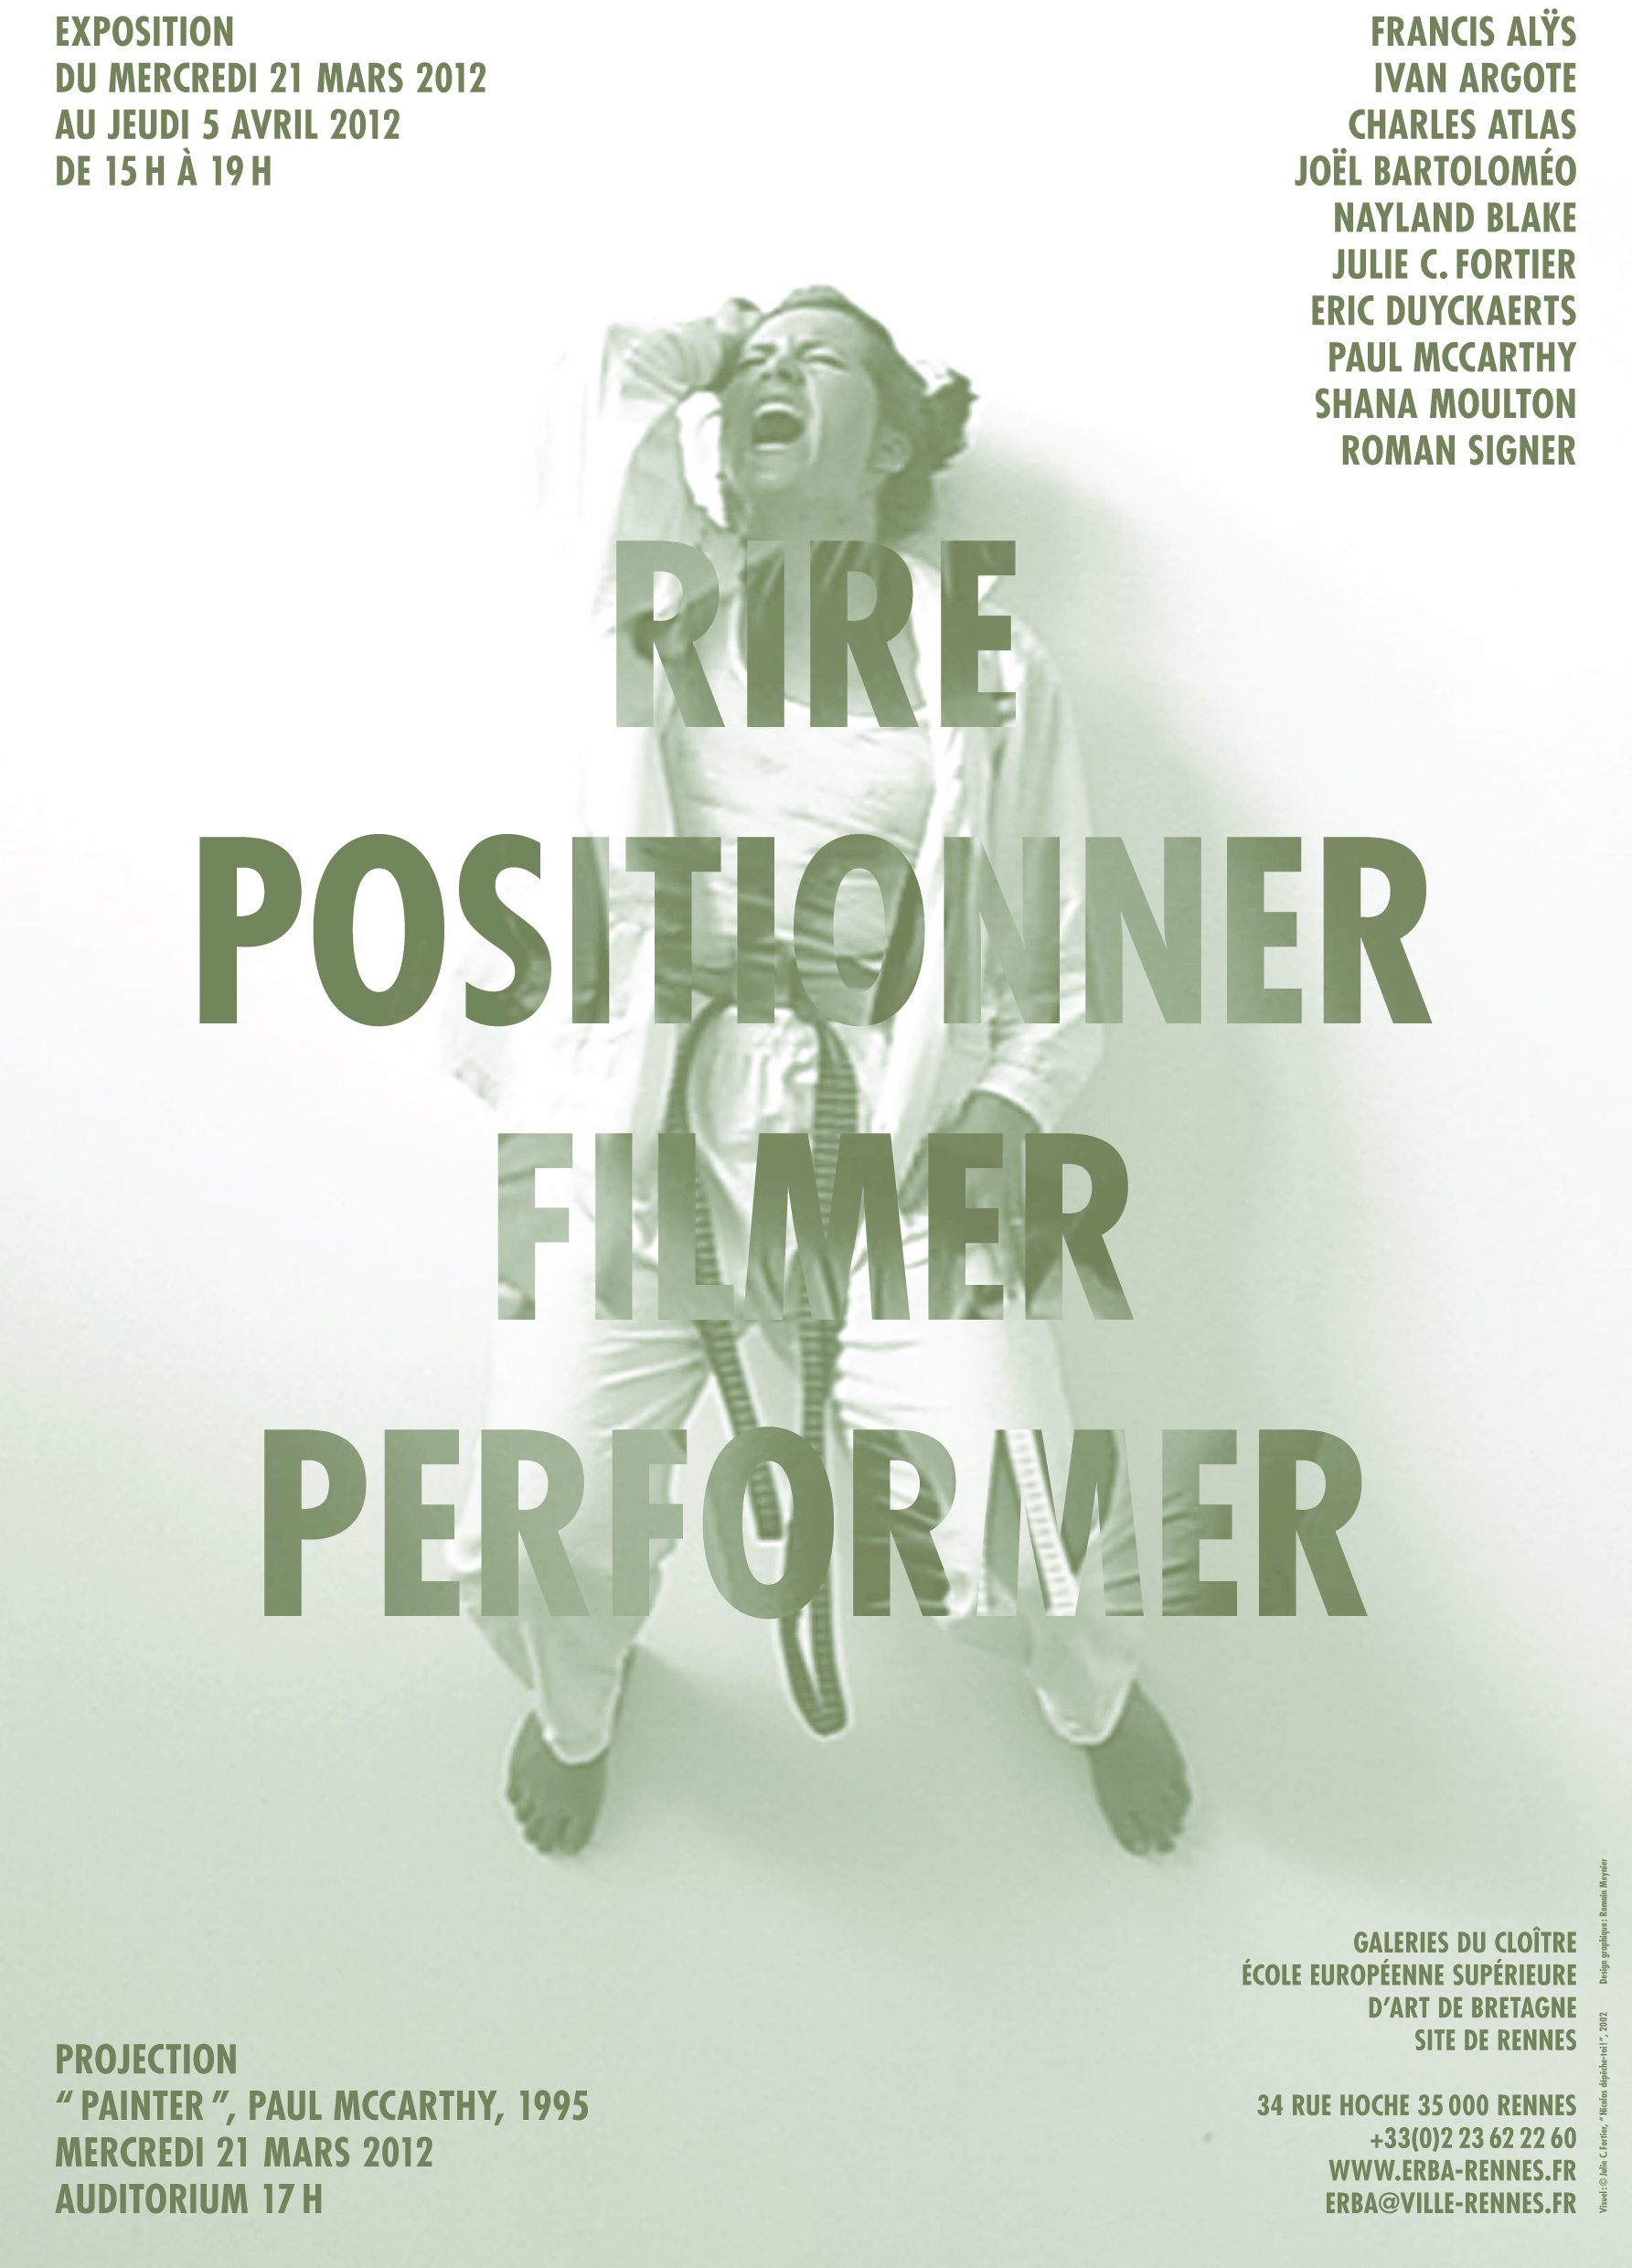 afficheRPFPcatalogue